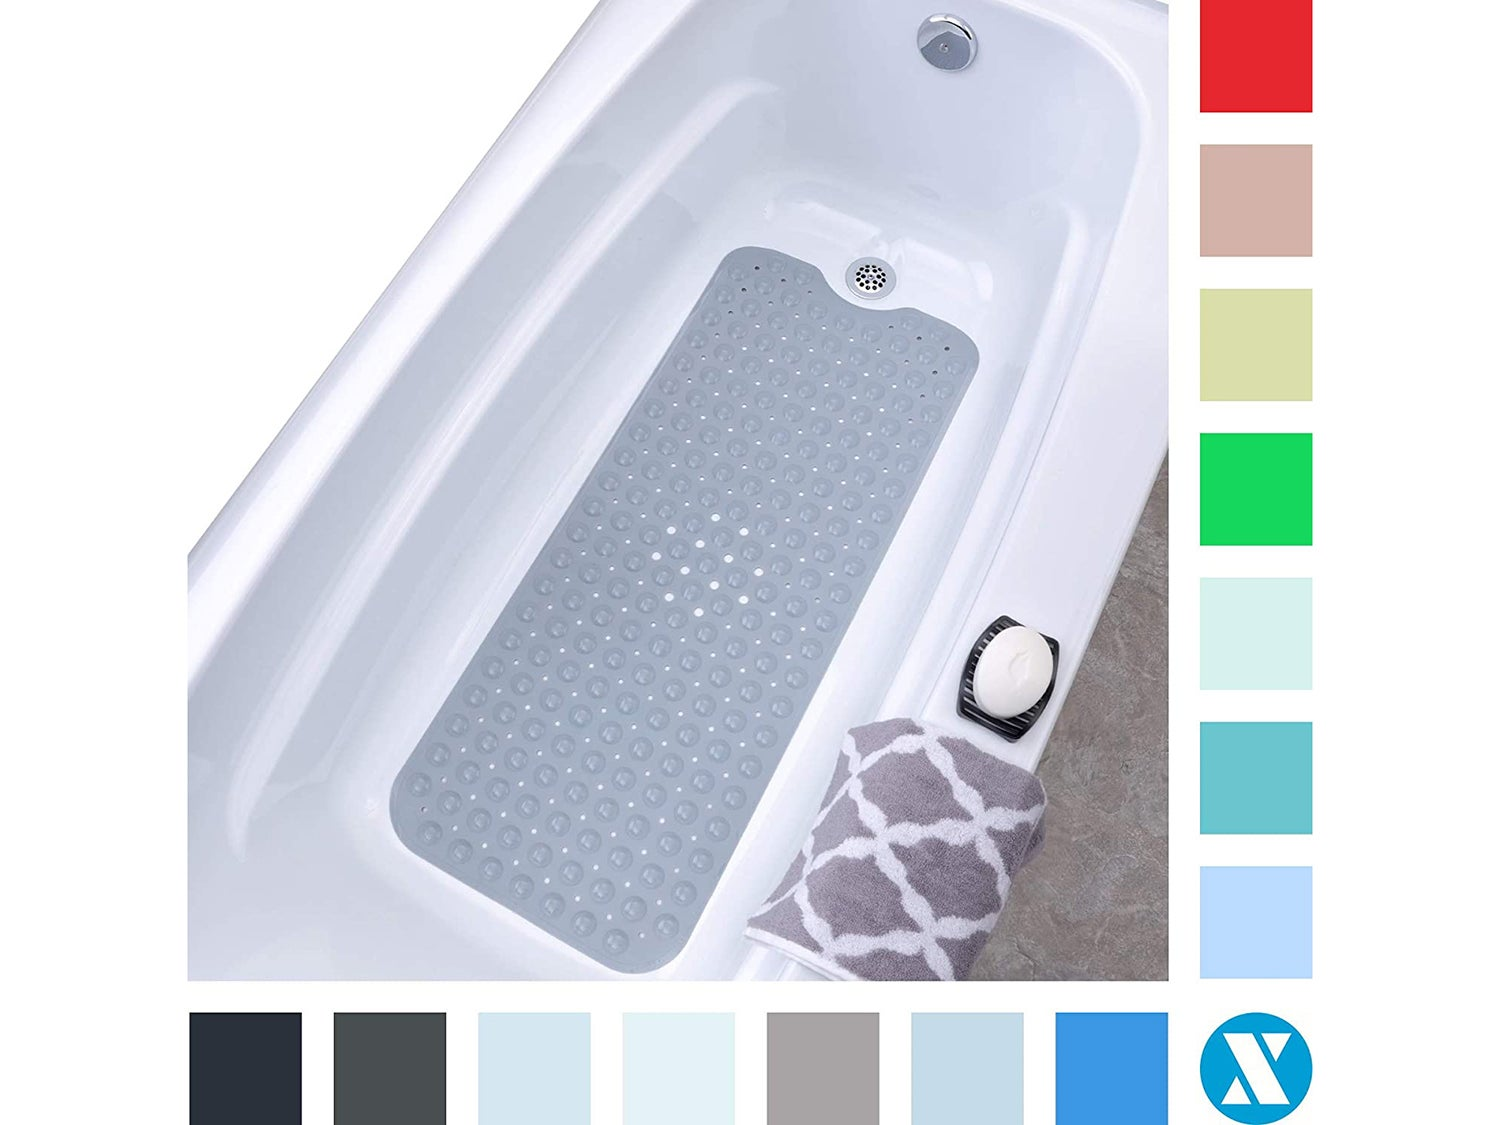 "SlipX Solutions Gray Extra Long Bath Mat Adds Non-Slip Traction to Tubs & Showers - 30% Longer Than Standard Mats! (200 Suction Cups, 39"" Long Bathtub Mat)"